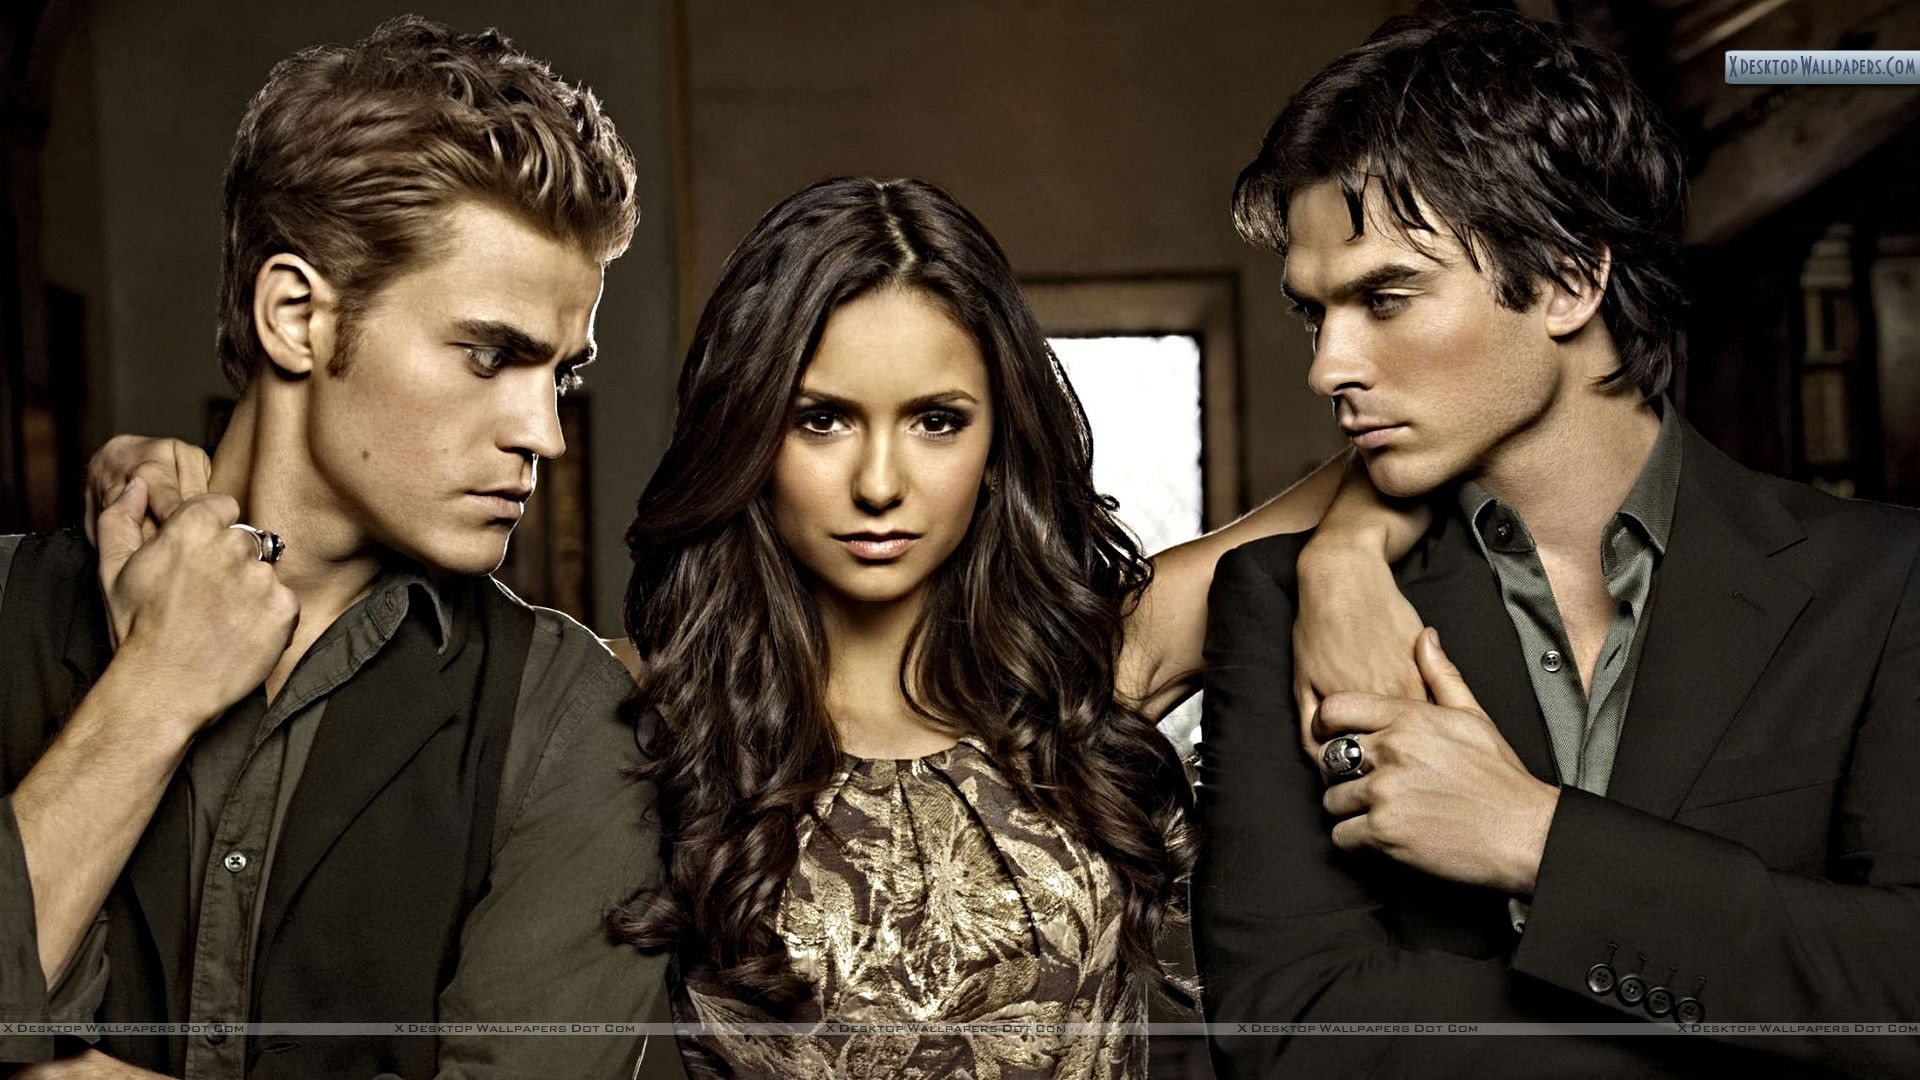 Image: http://www.desktopwallpaperhd.net/wallpapers/20/2/elena-stefan-vampire-diaries-damon-wallpapers-backgrounds-posing-movies-200002.jpg